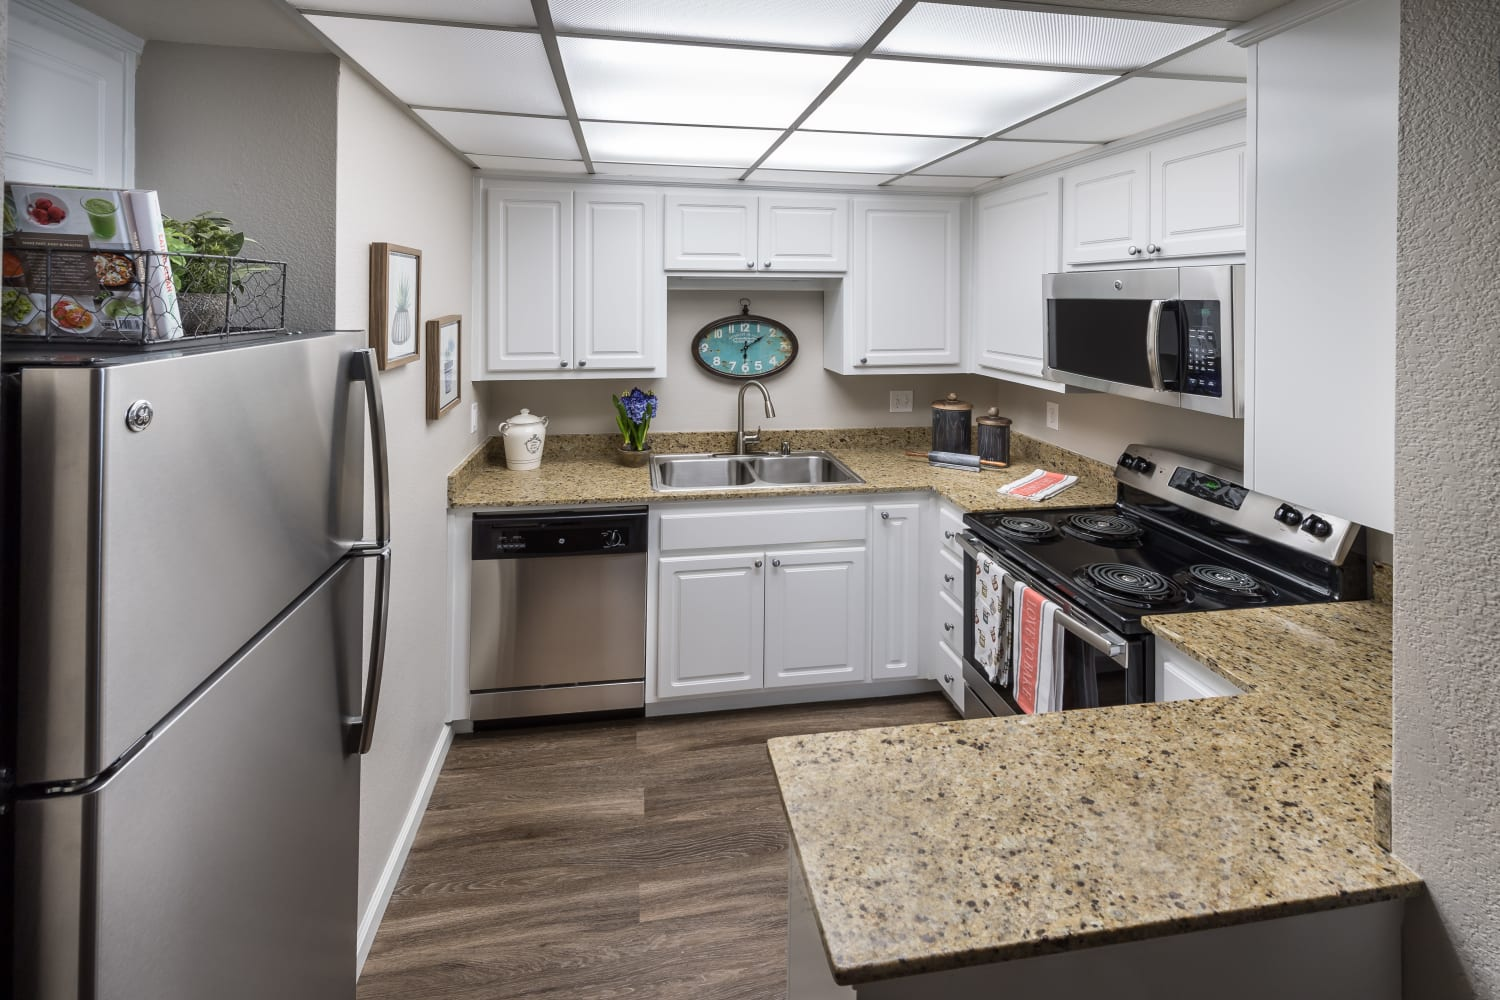 Enjoy an updated kitchen at Bella Vista Apartments in Santa Clara, California